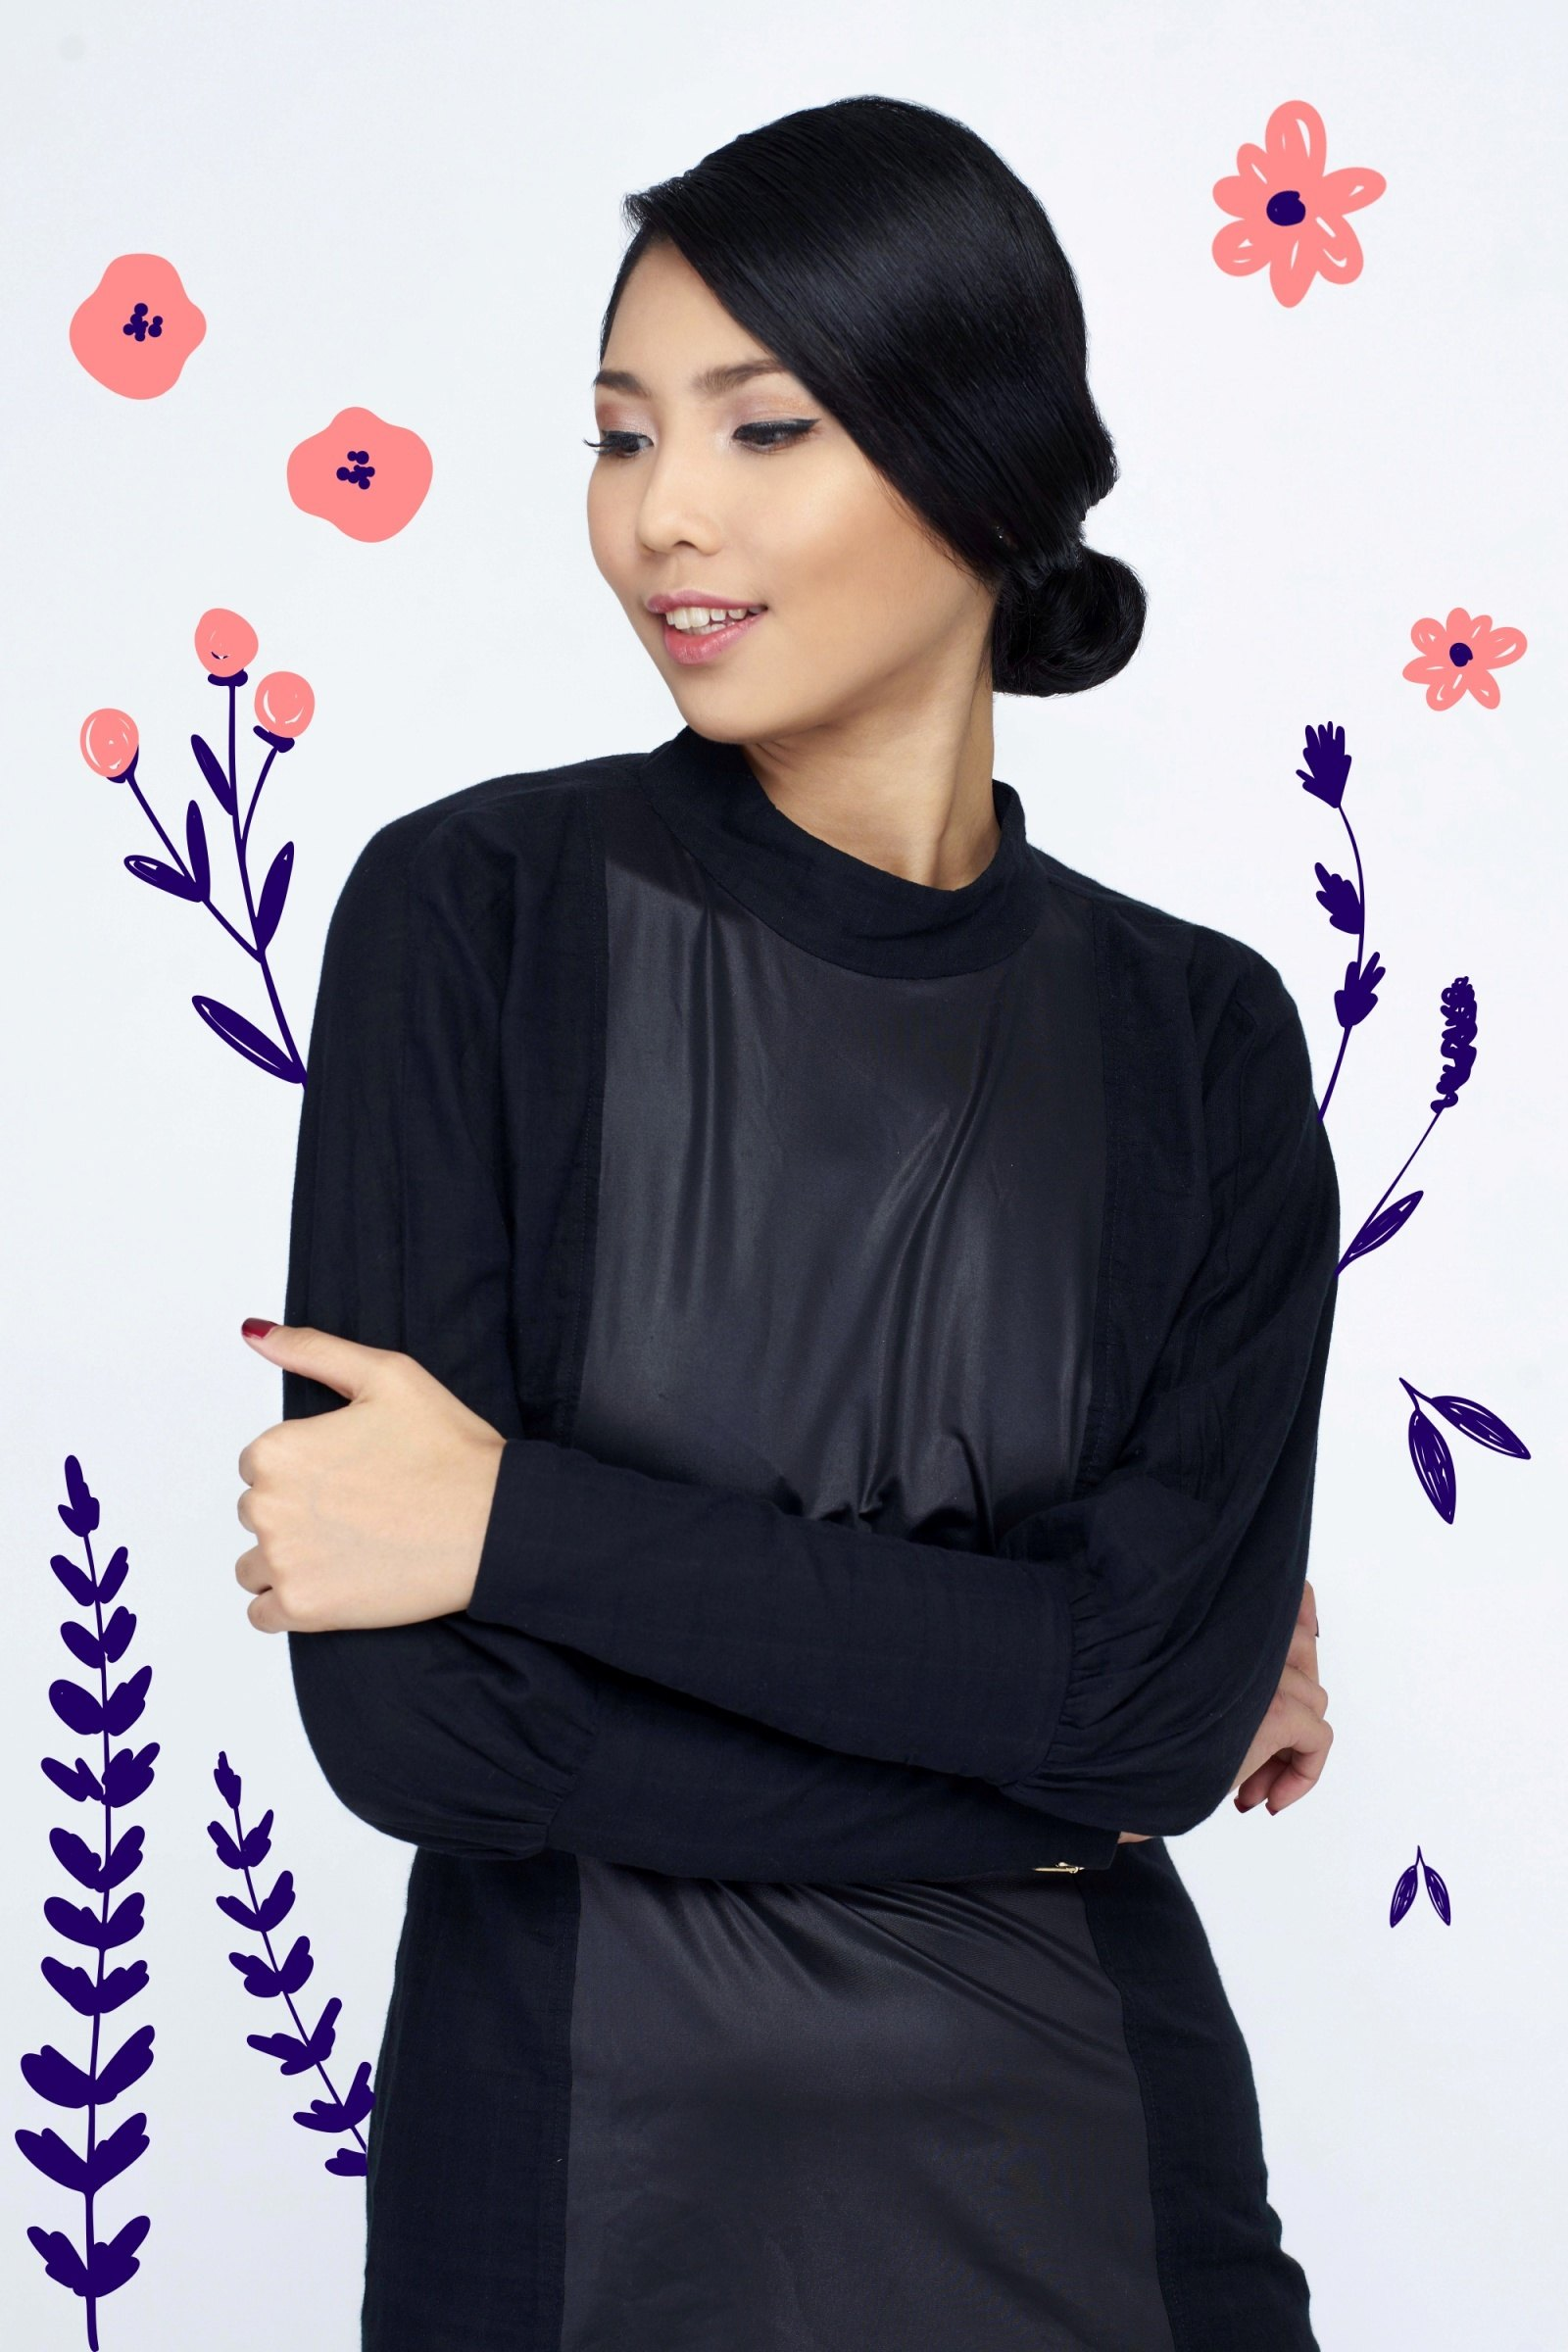 Flores de mayo hairstyles: Asian woman with black hair in chignon